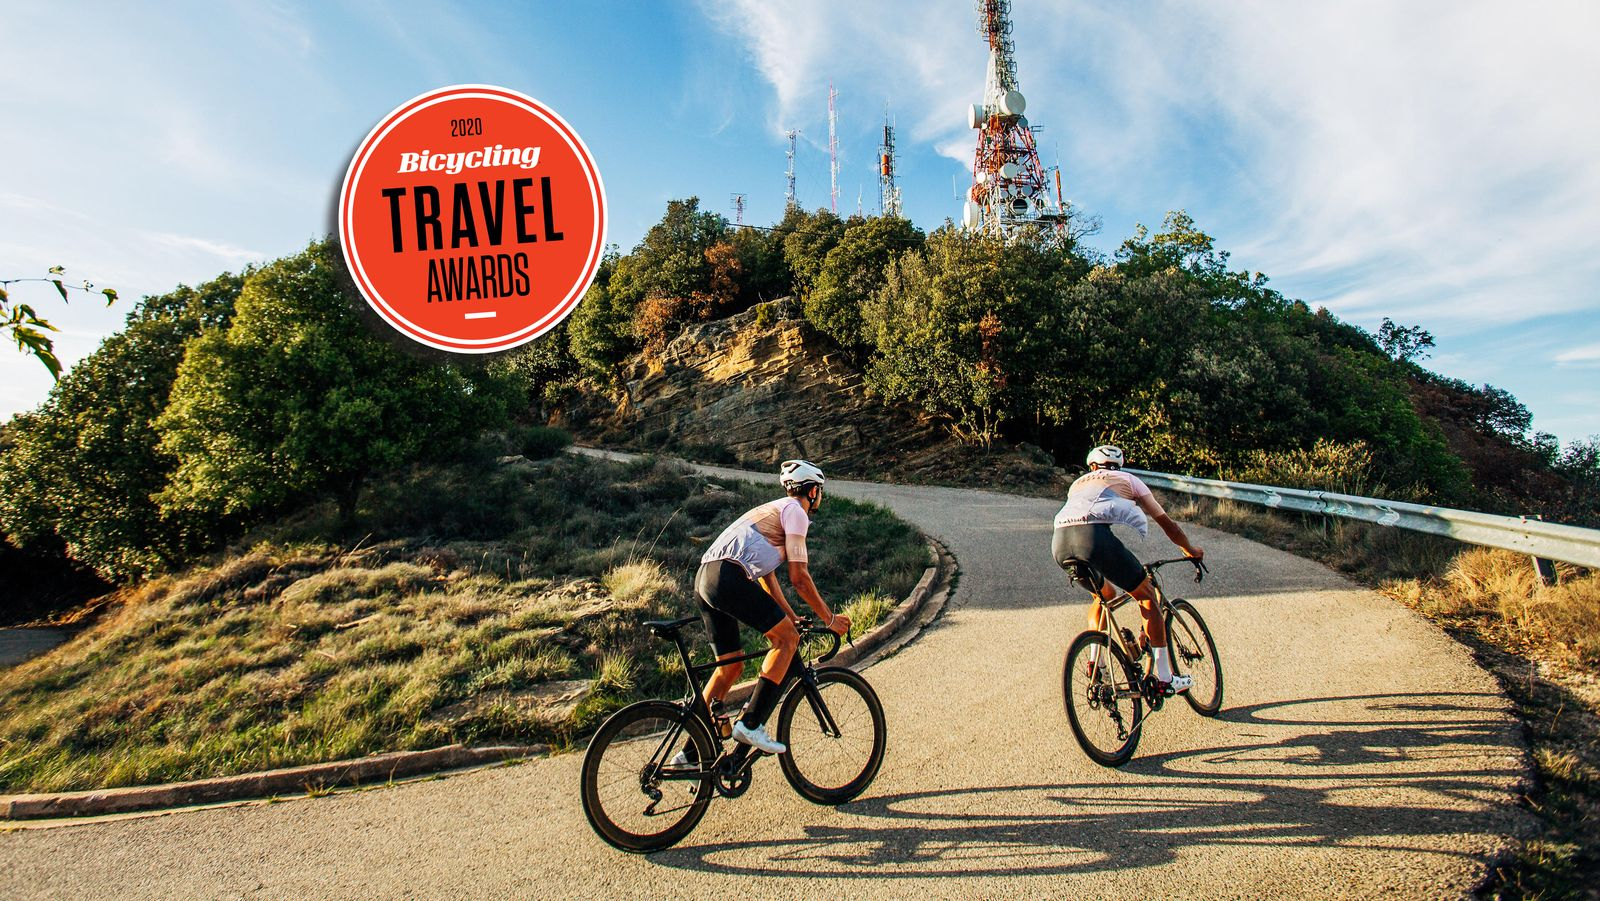 Best Bike Tours According to Bicycling Magazine